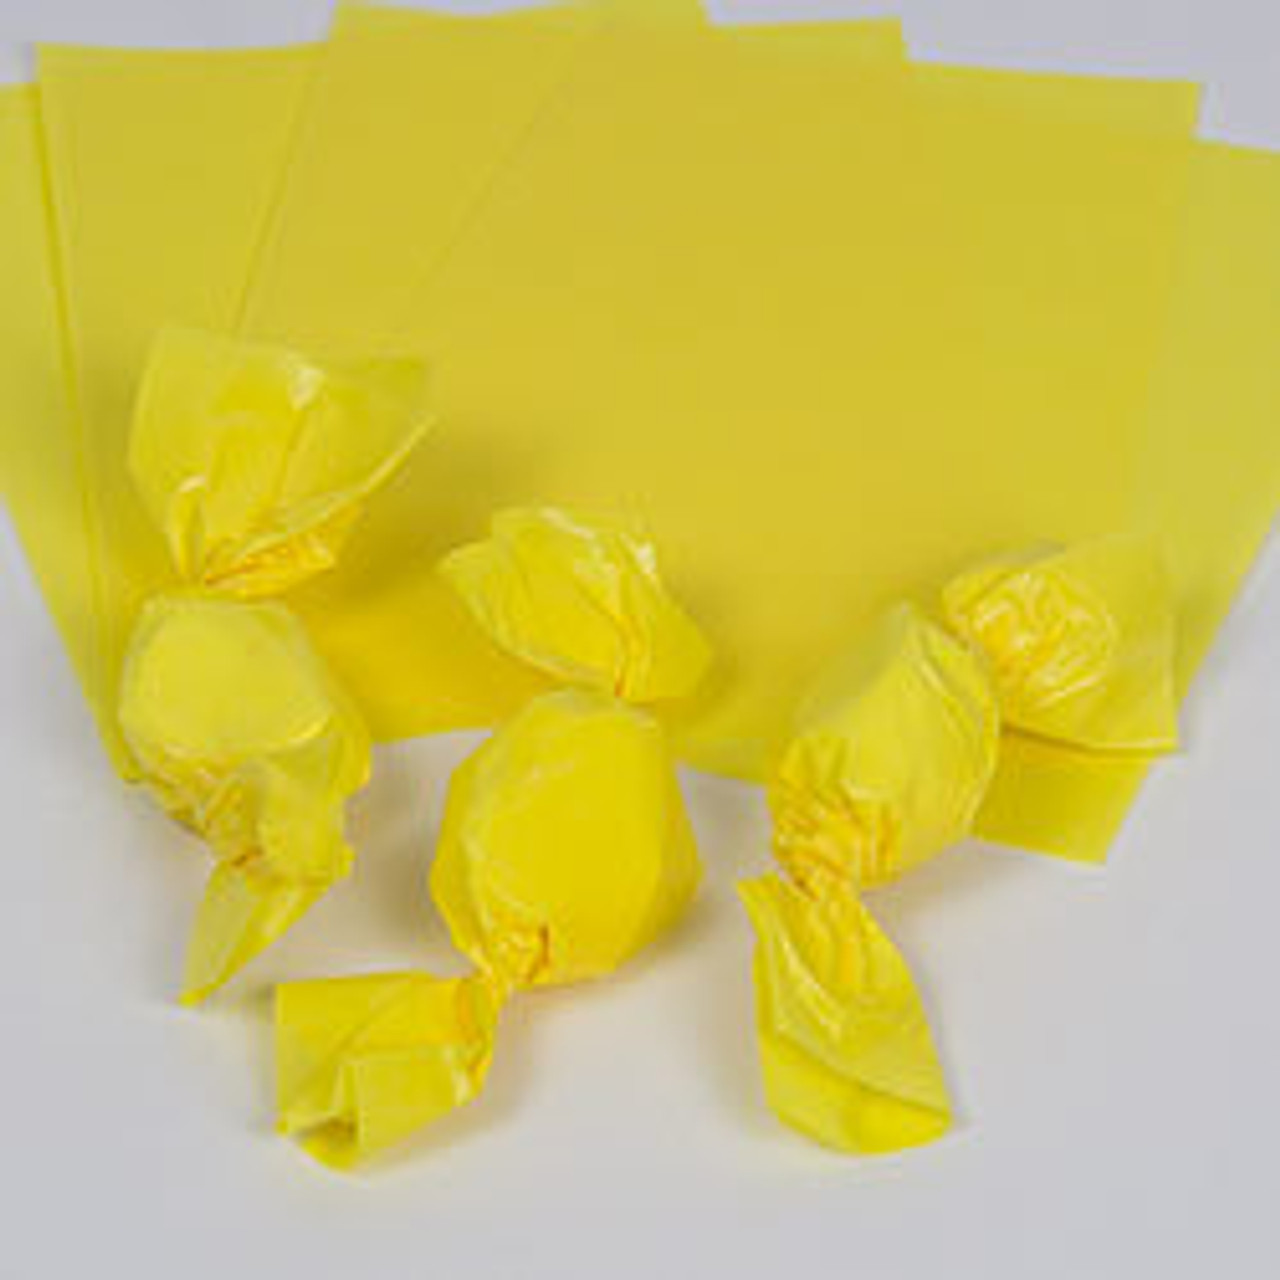 YELLOW WRAPPERS